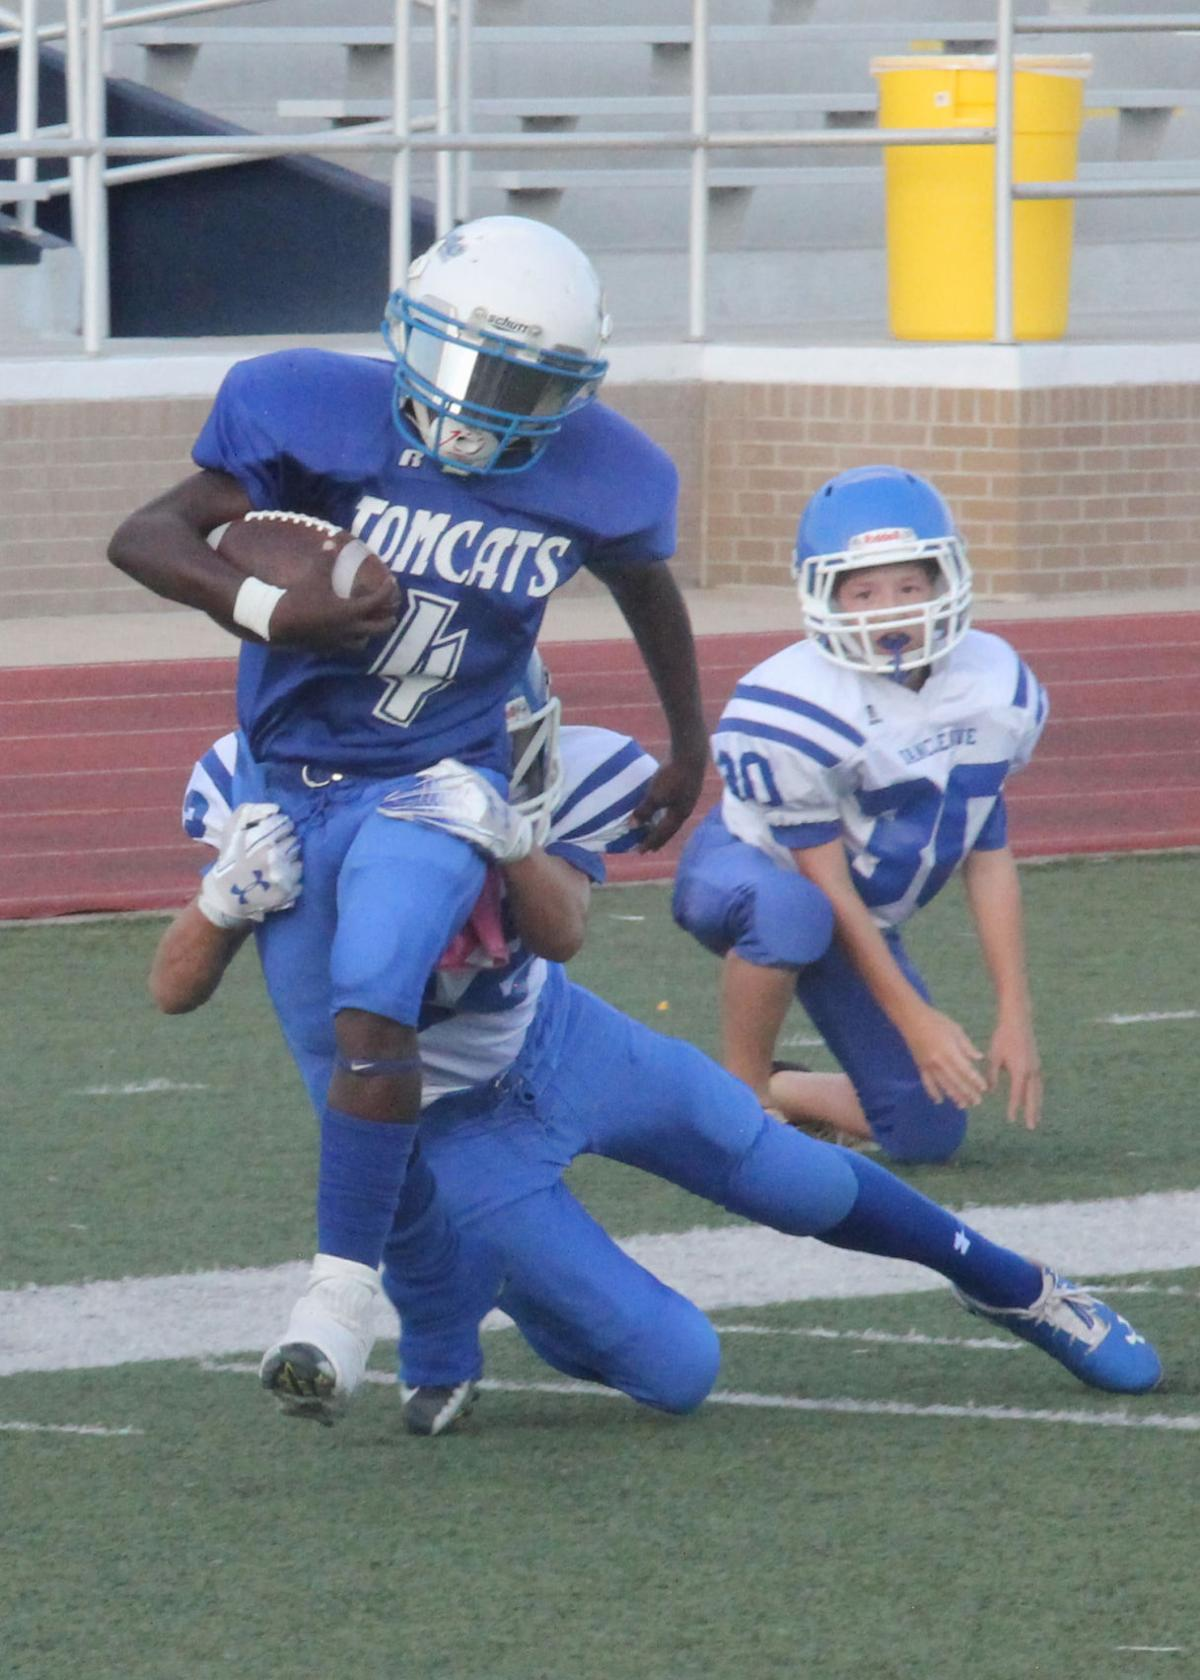 SMS Tomcats fall to Vancleave